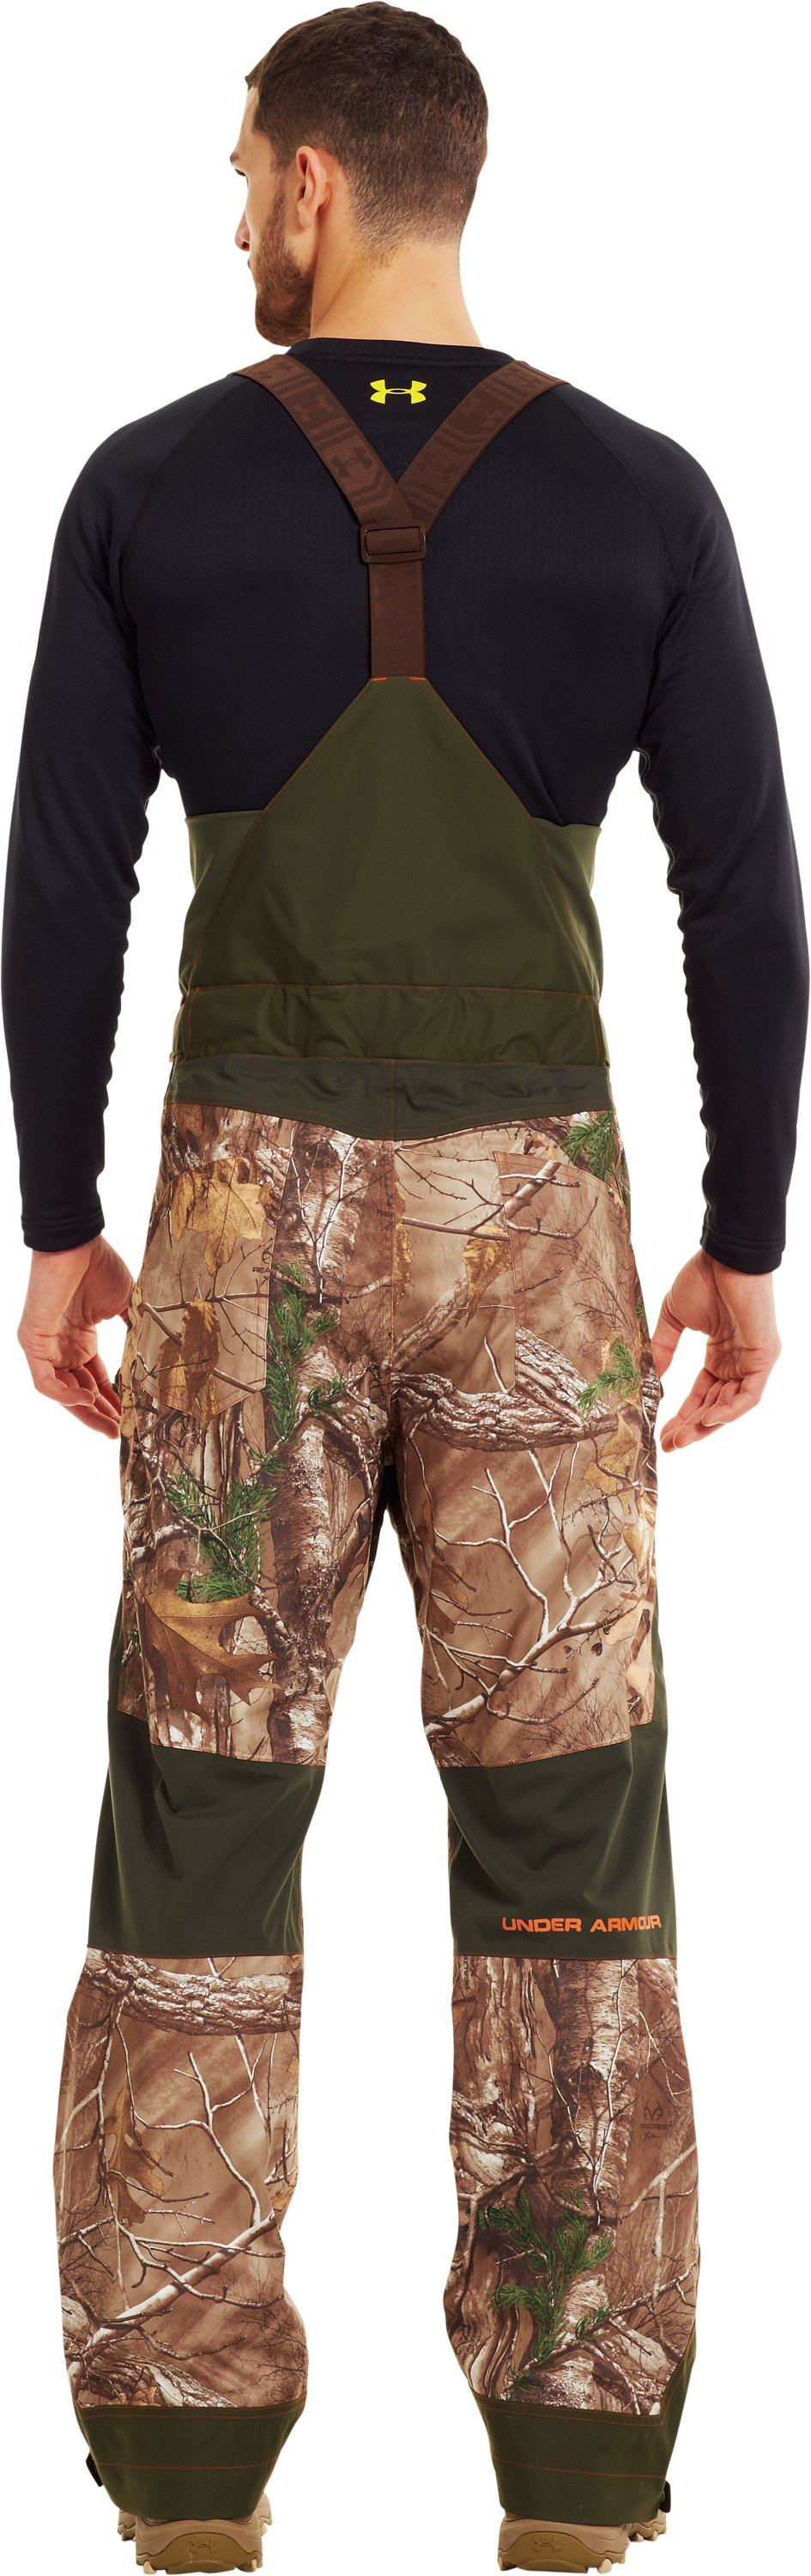 Men's Ridge Reaper® Shell Camo Hunting Bib, REALTREE AP-XTRA, Back